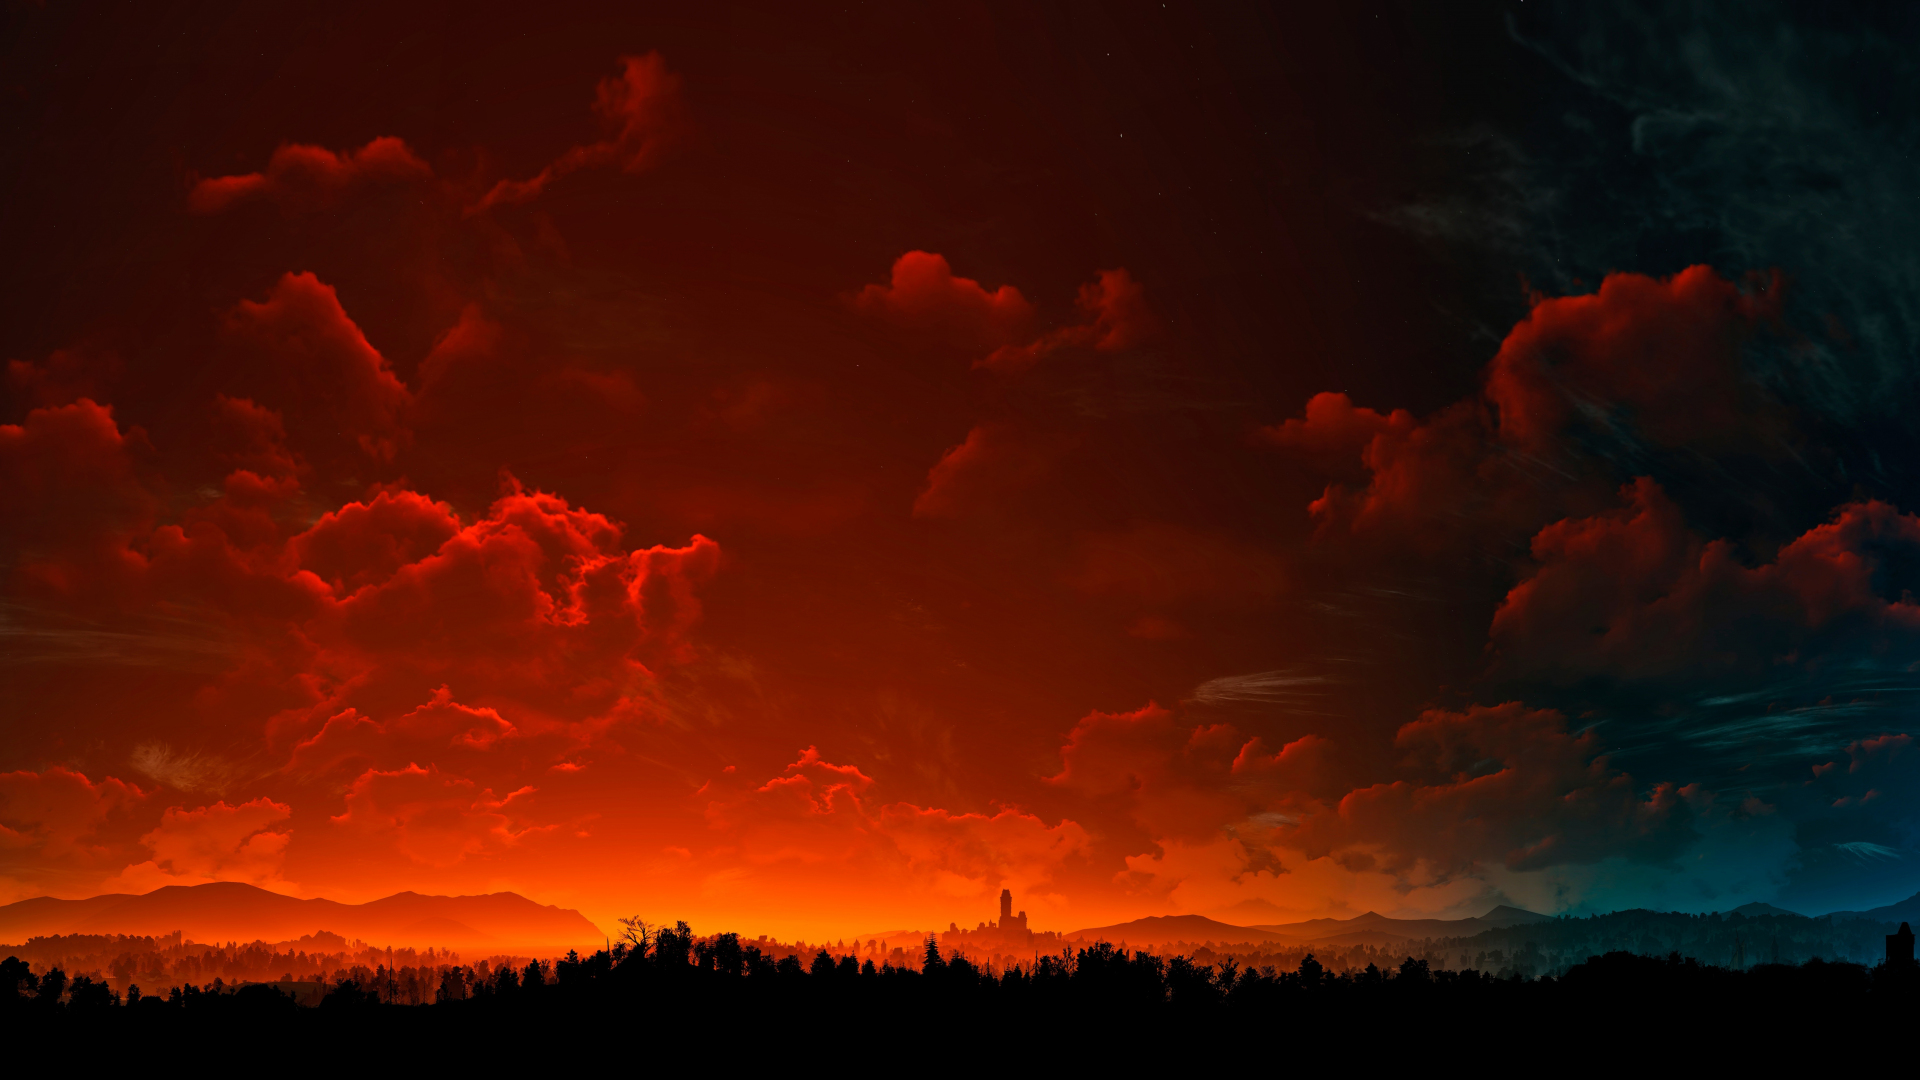 Download 1920x1080 Wallpaper Clouds Sunset Sky The